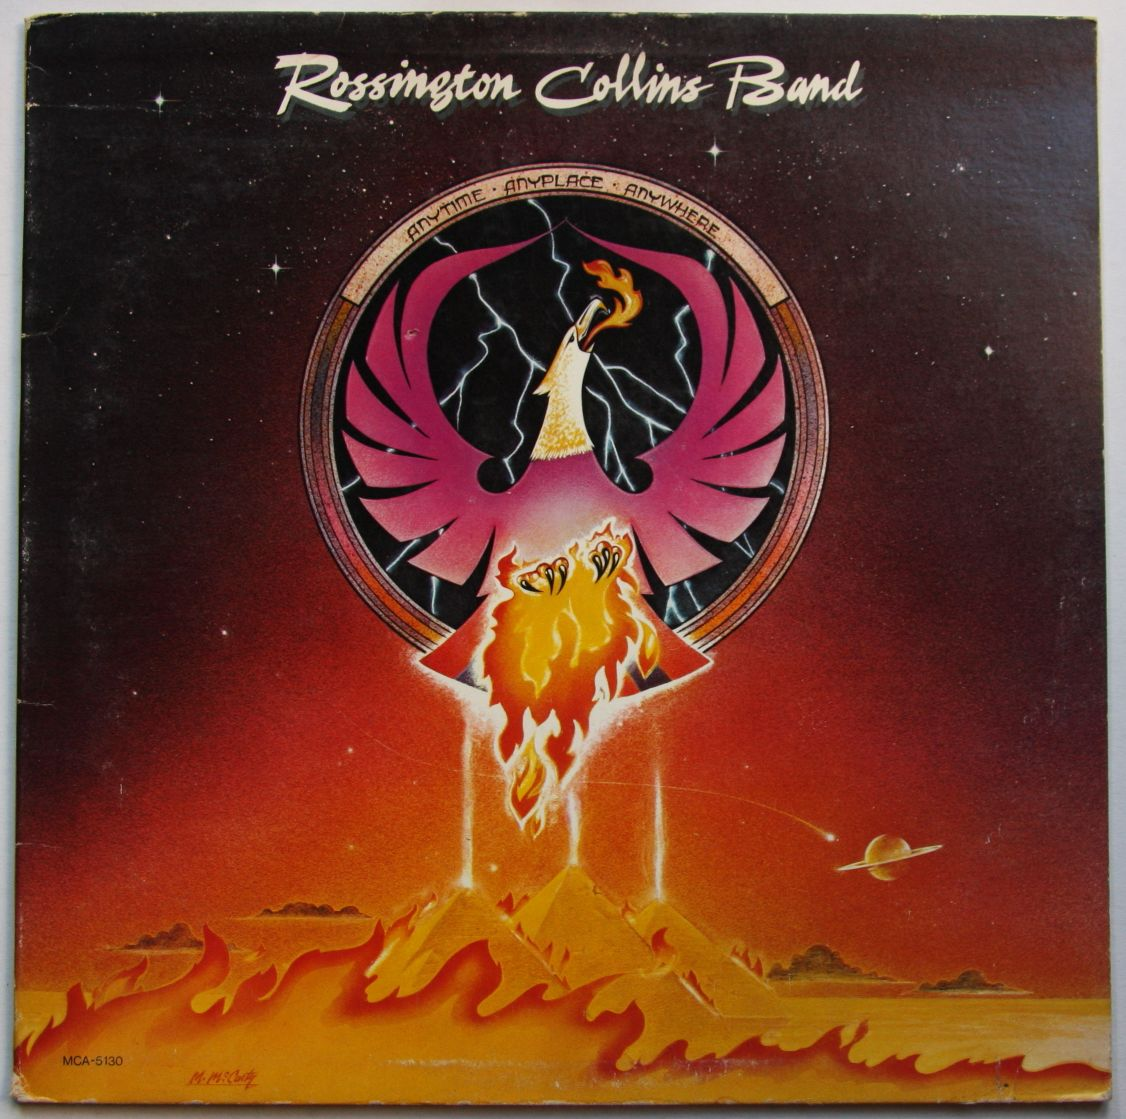 Rossington Collins Band Anytime Anyplace Anywhere Records